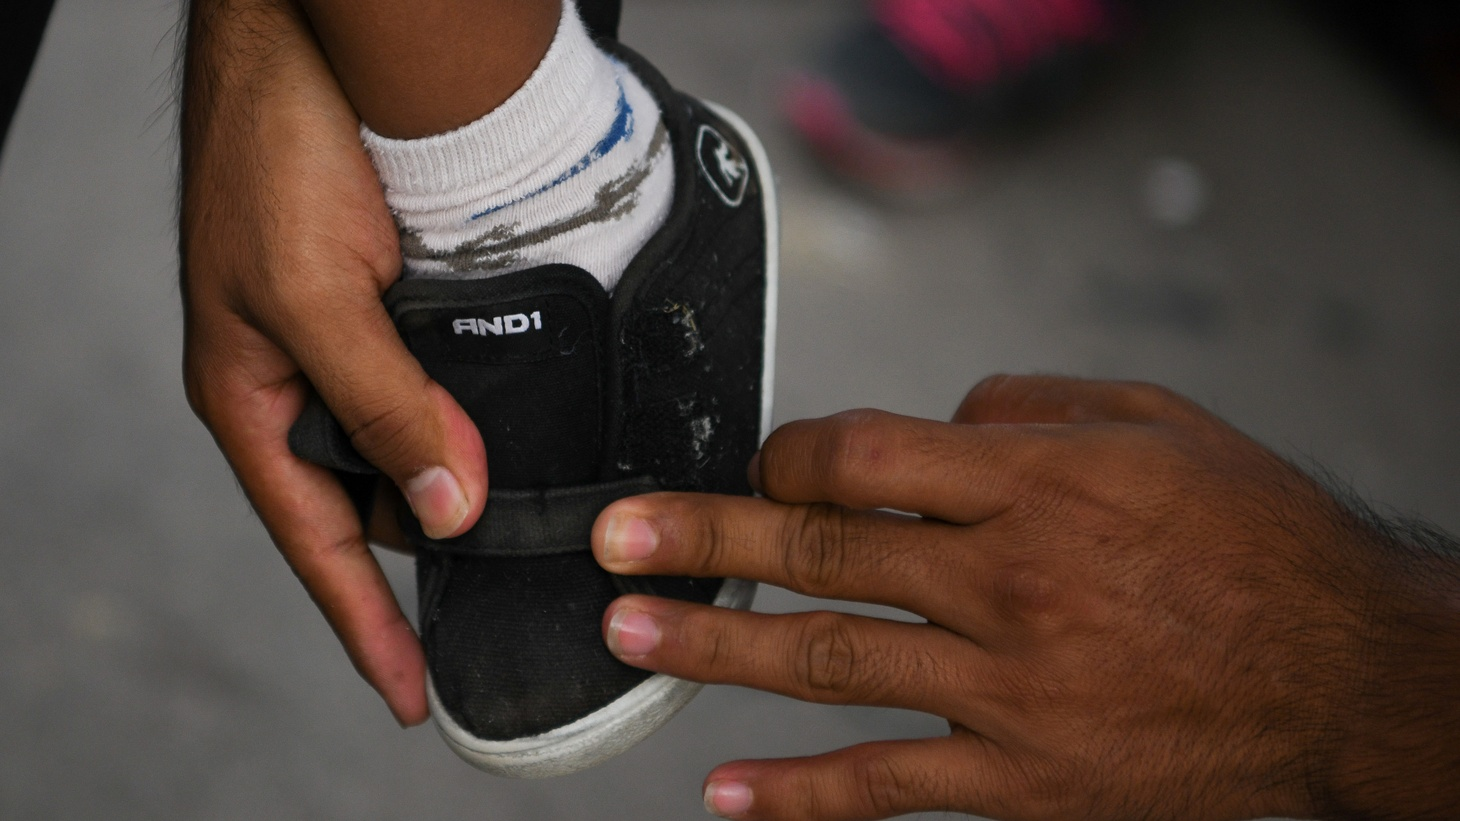 A Honduran asylum seeker puts a shoe on his 3-year-old son's foot. McAllen, Texas, U.S., May 16, 2019.